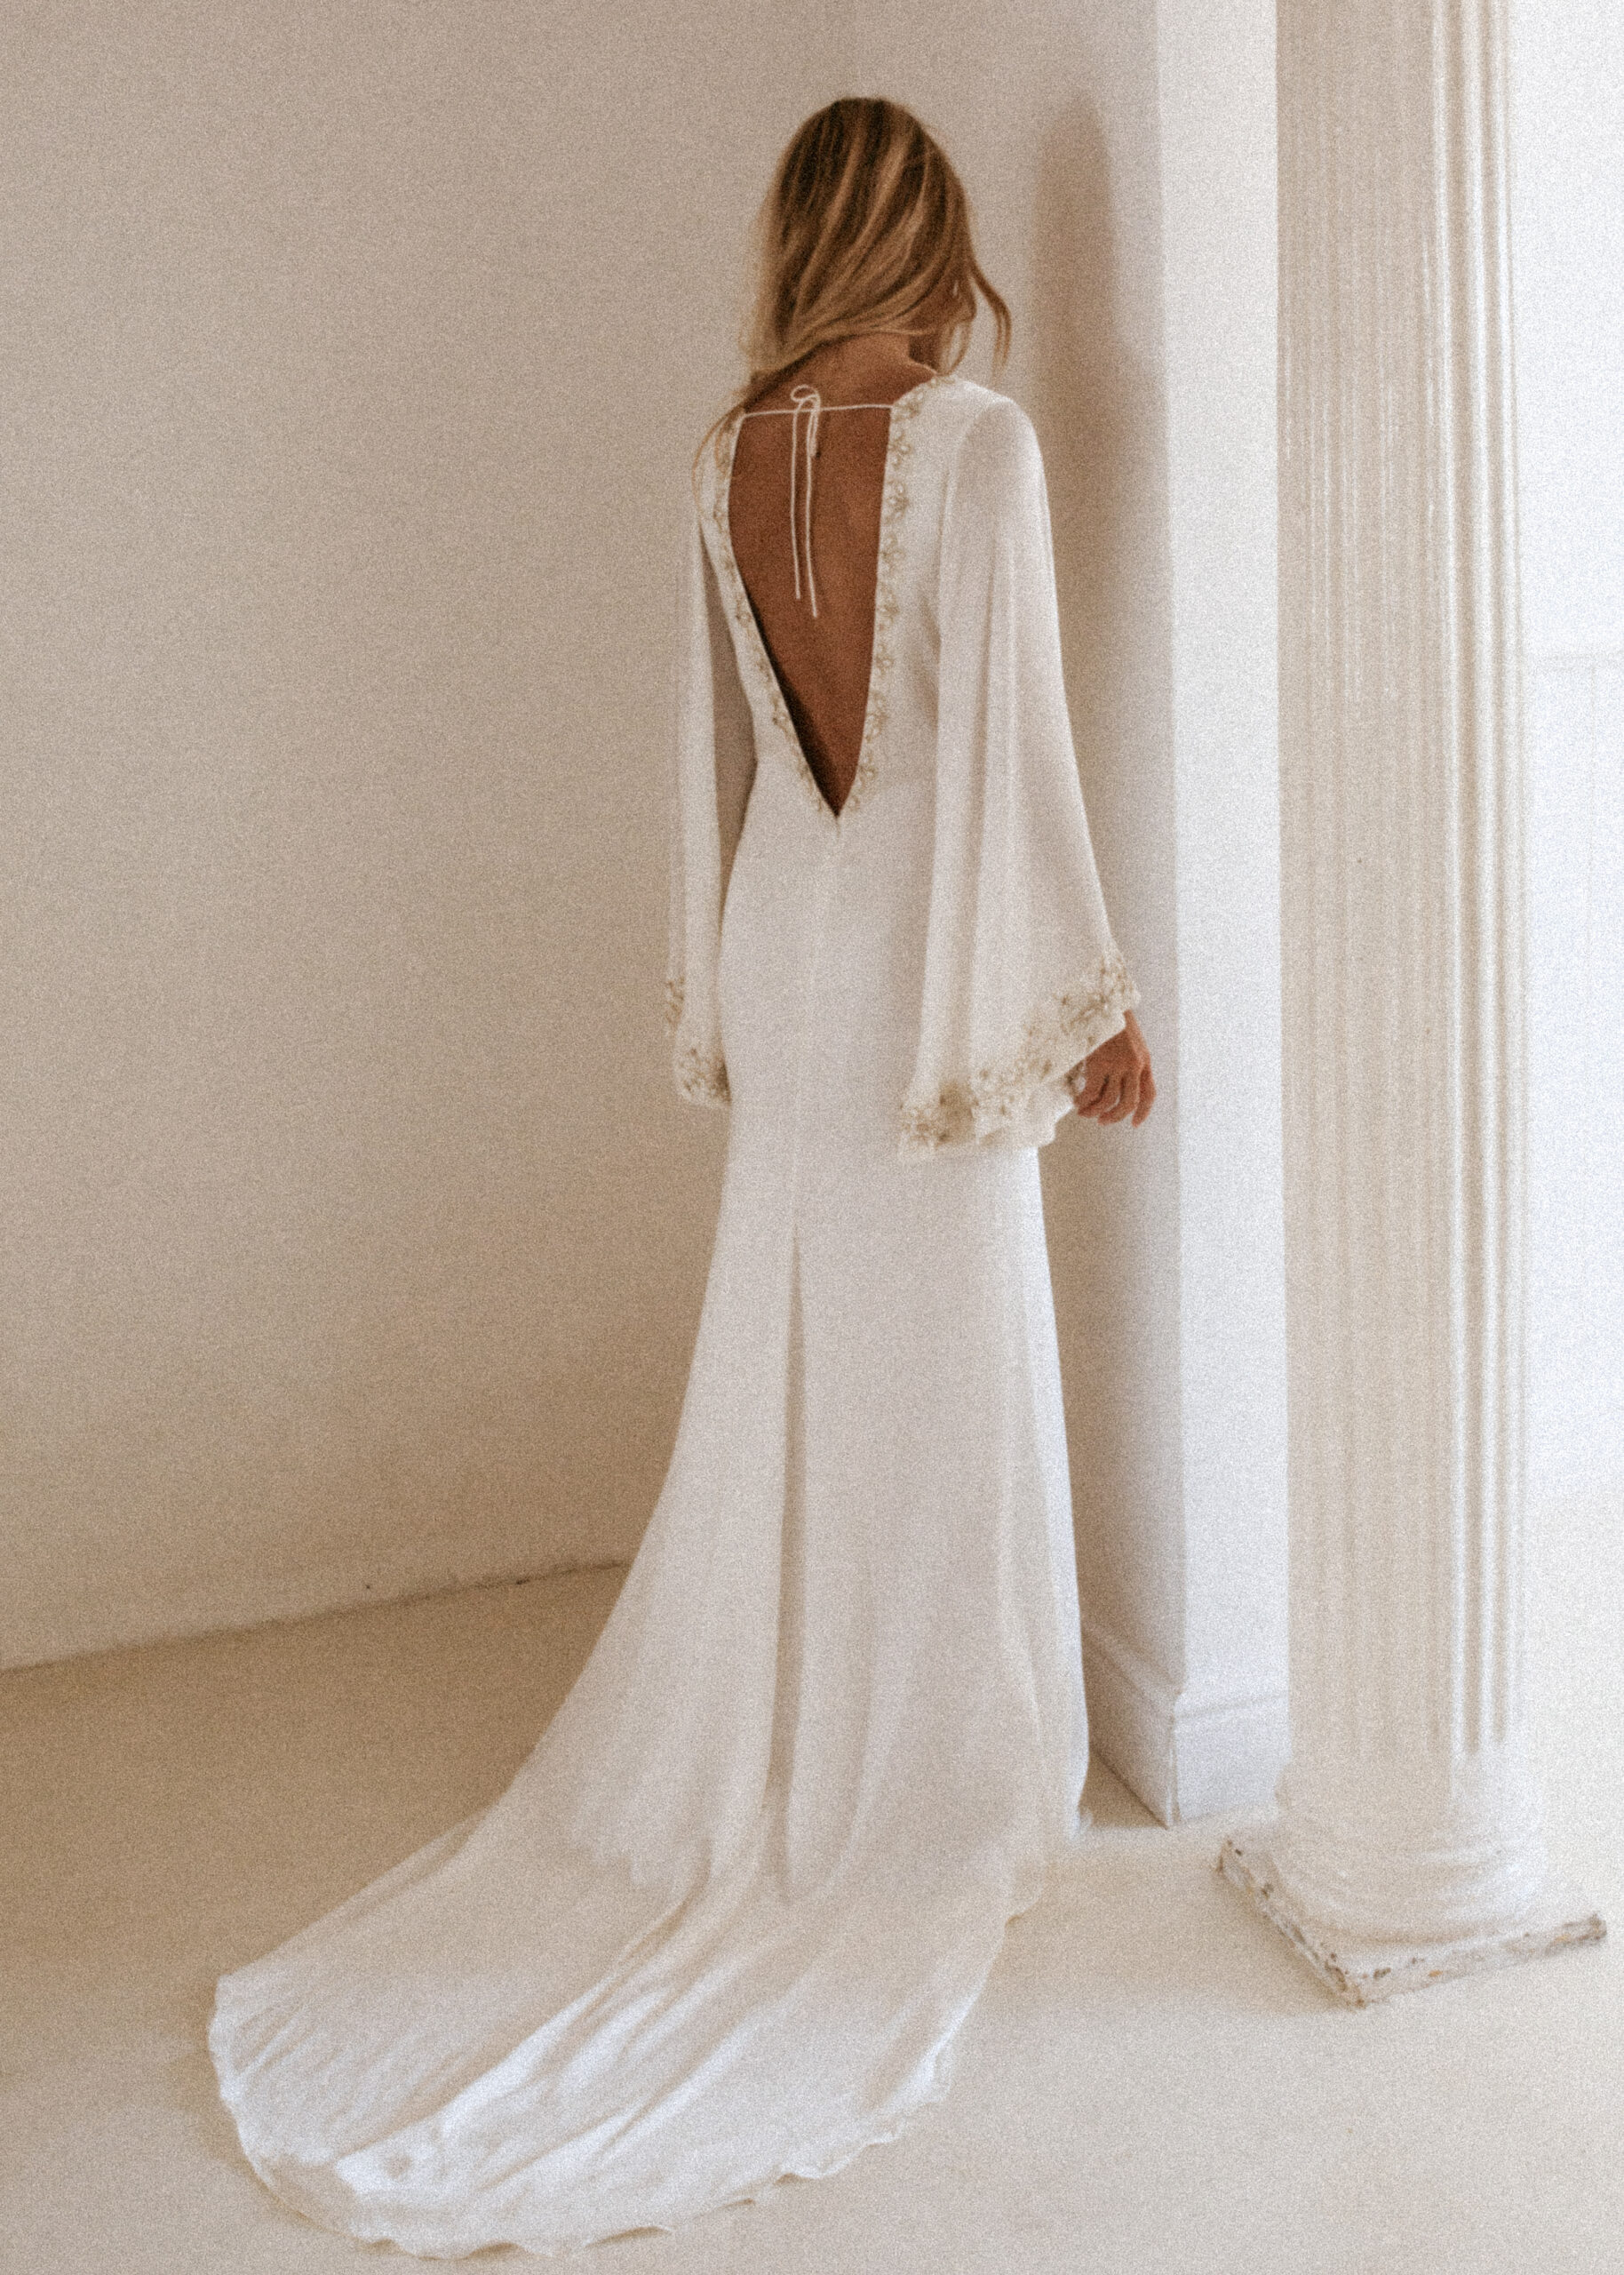 HUDSON GOWN BY TEMPLE BY BO & LUCA WHITE CONCEPTS BRAUTMODE AACHEN